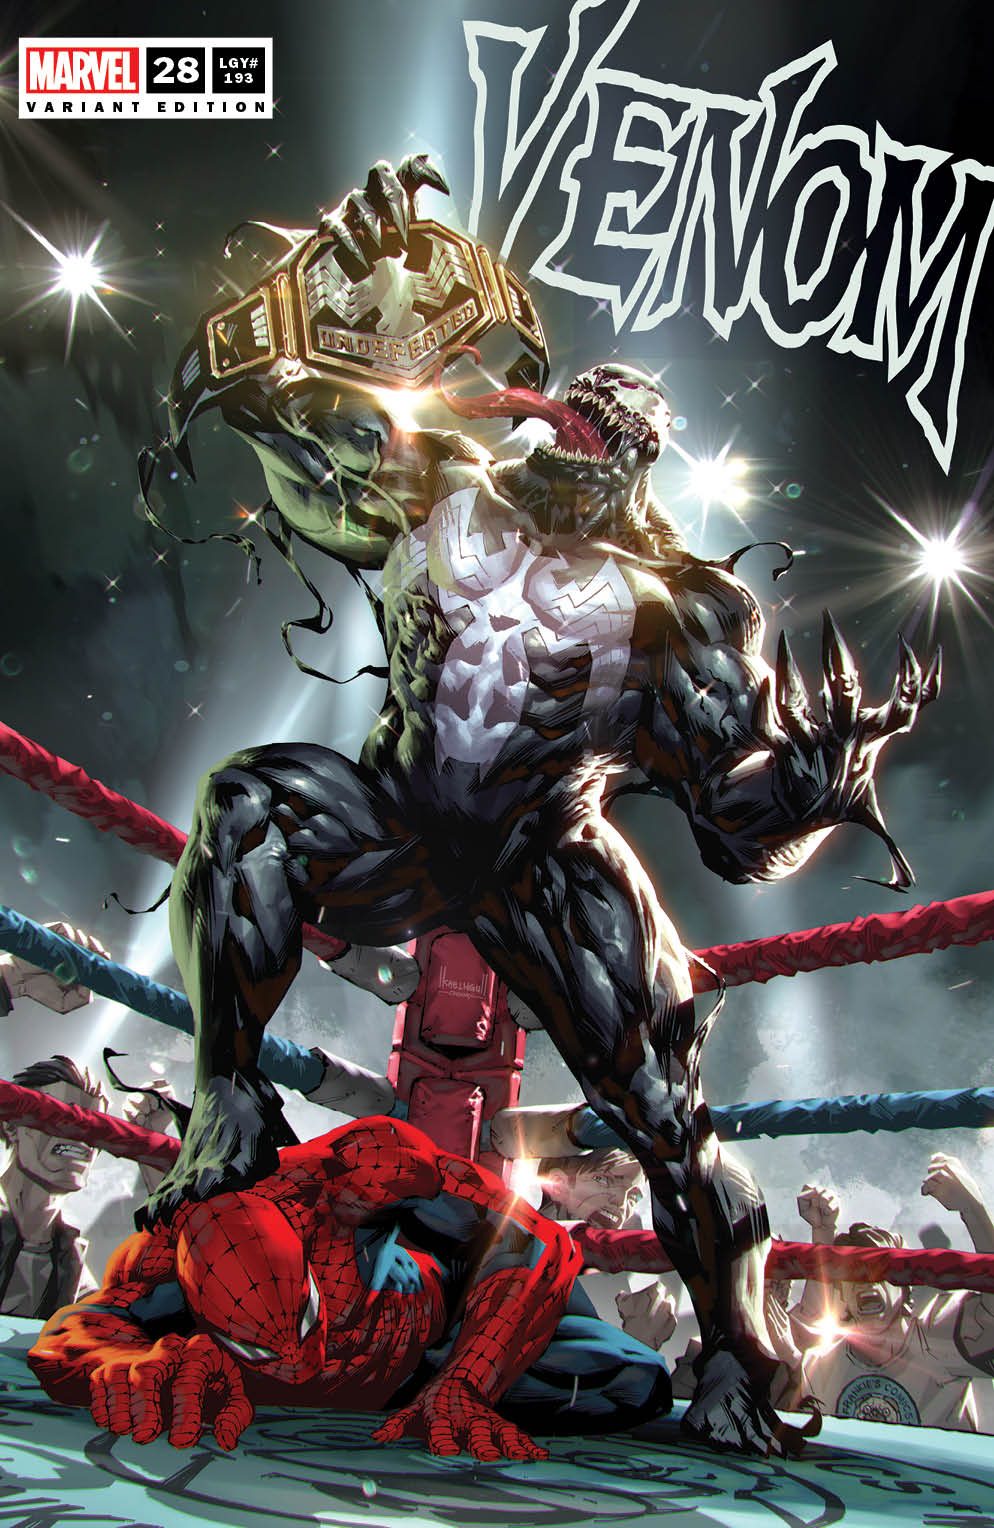 VENOM #28 KAEL NGU COVER (TRADE DRESS VARIANT)